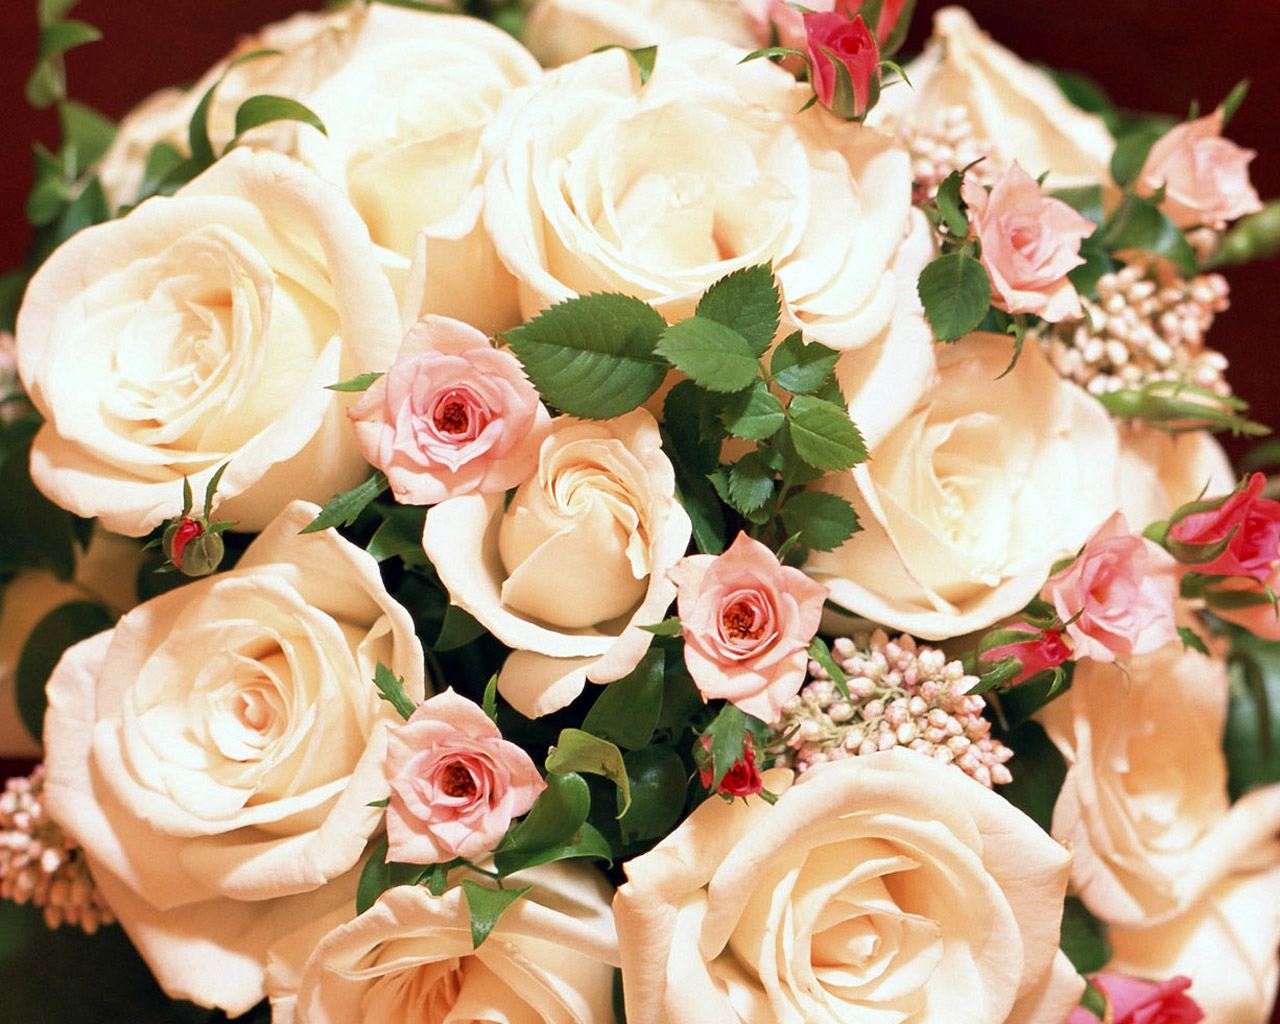 beautiful roses images for background